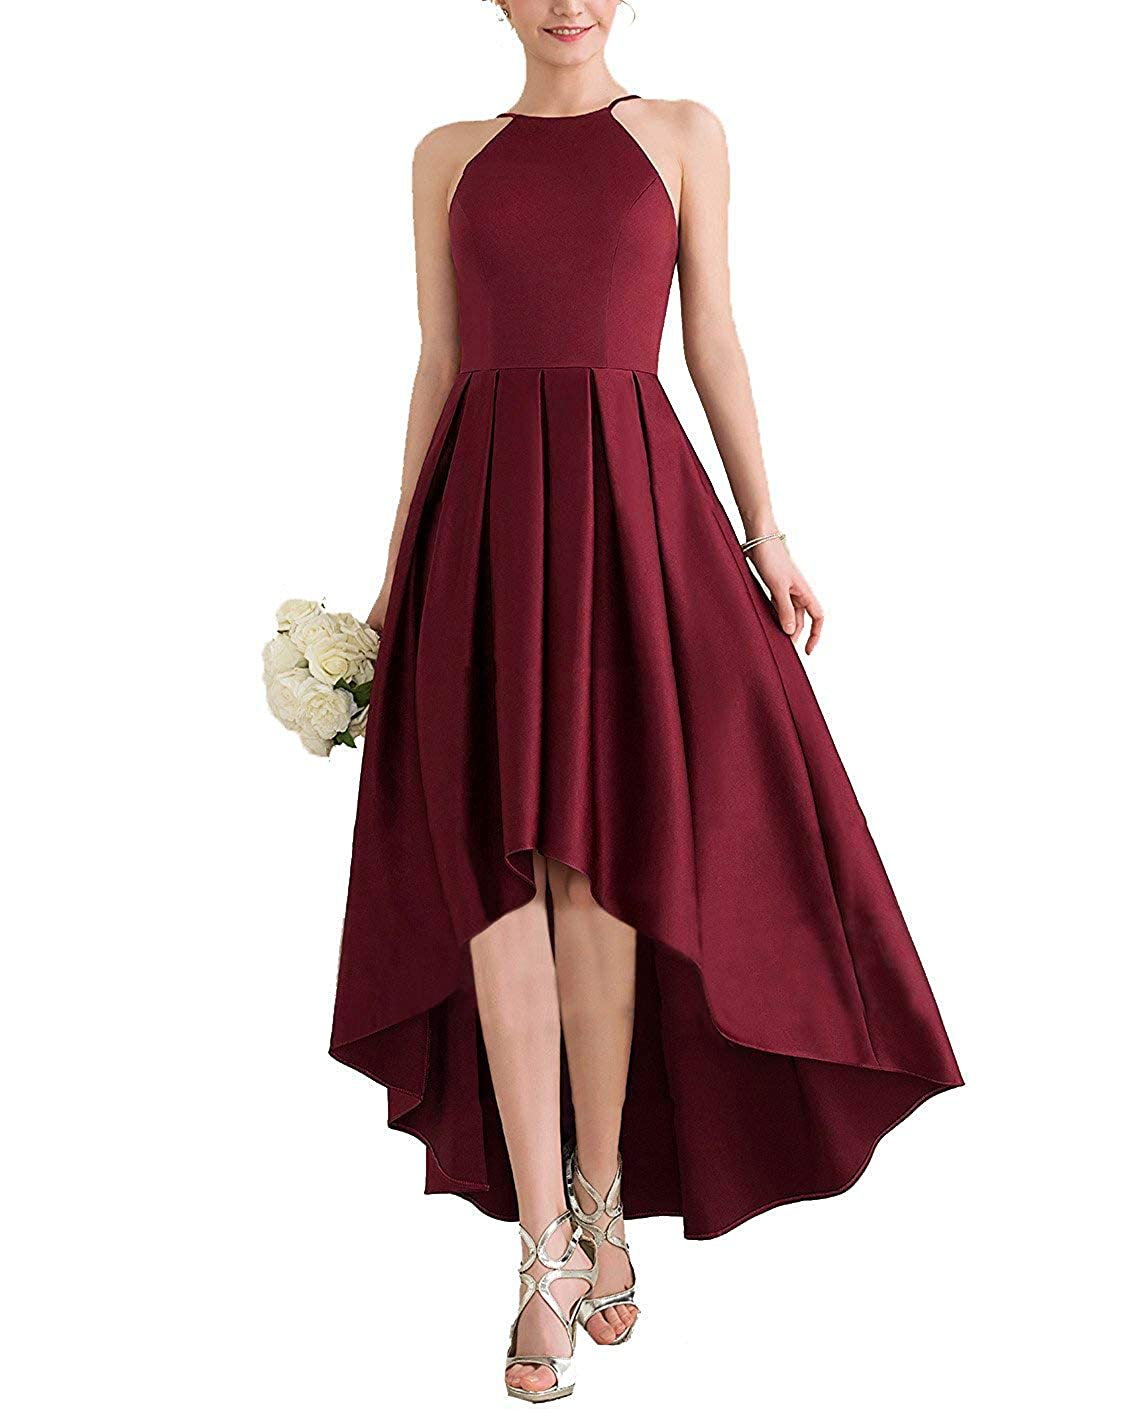 Burgundy JINGDRESS Womens High Low Satin Bridesmaid Dress High Neck Sleeveless A Line Pleated Prom Gowns